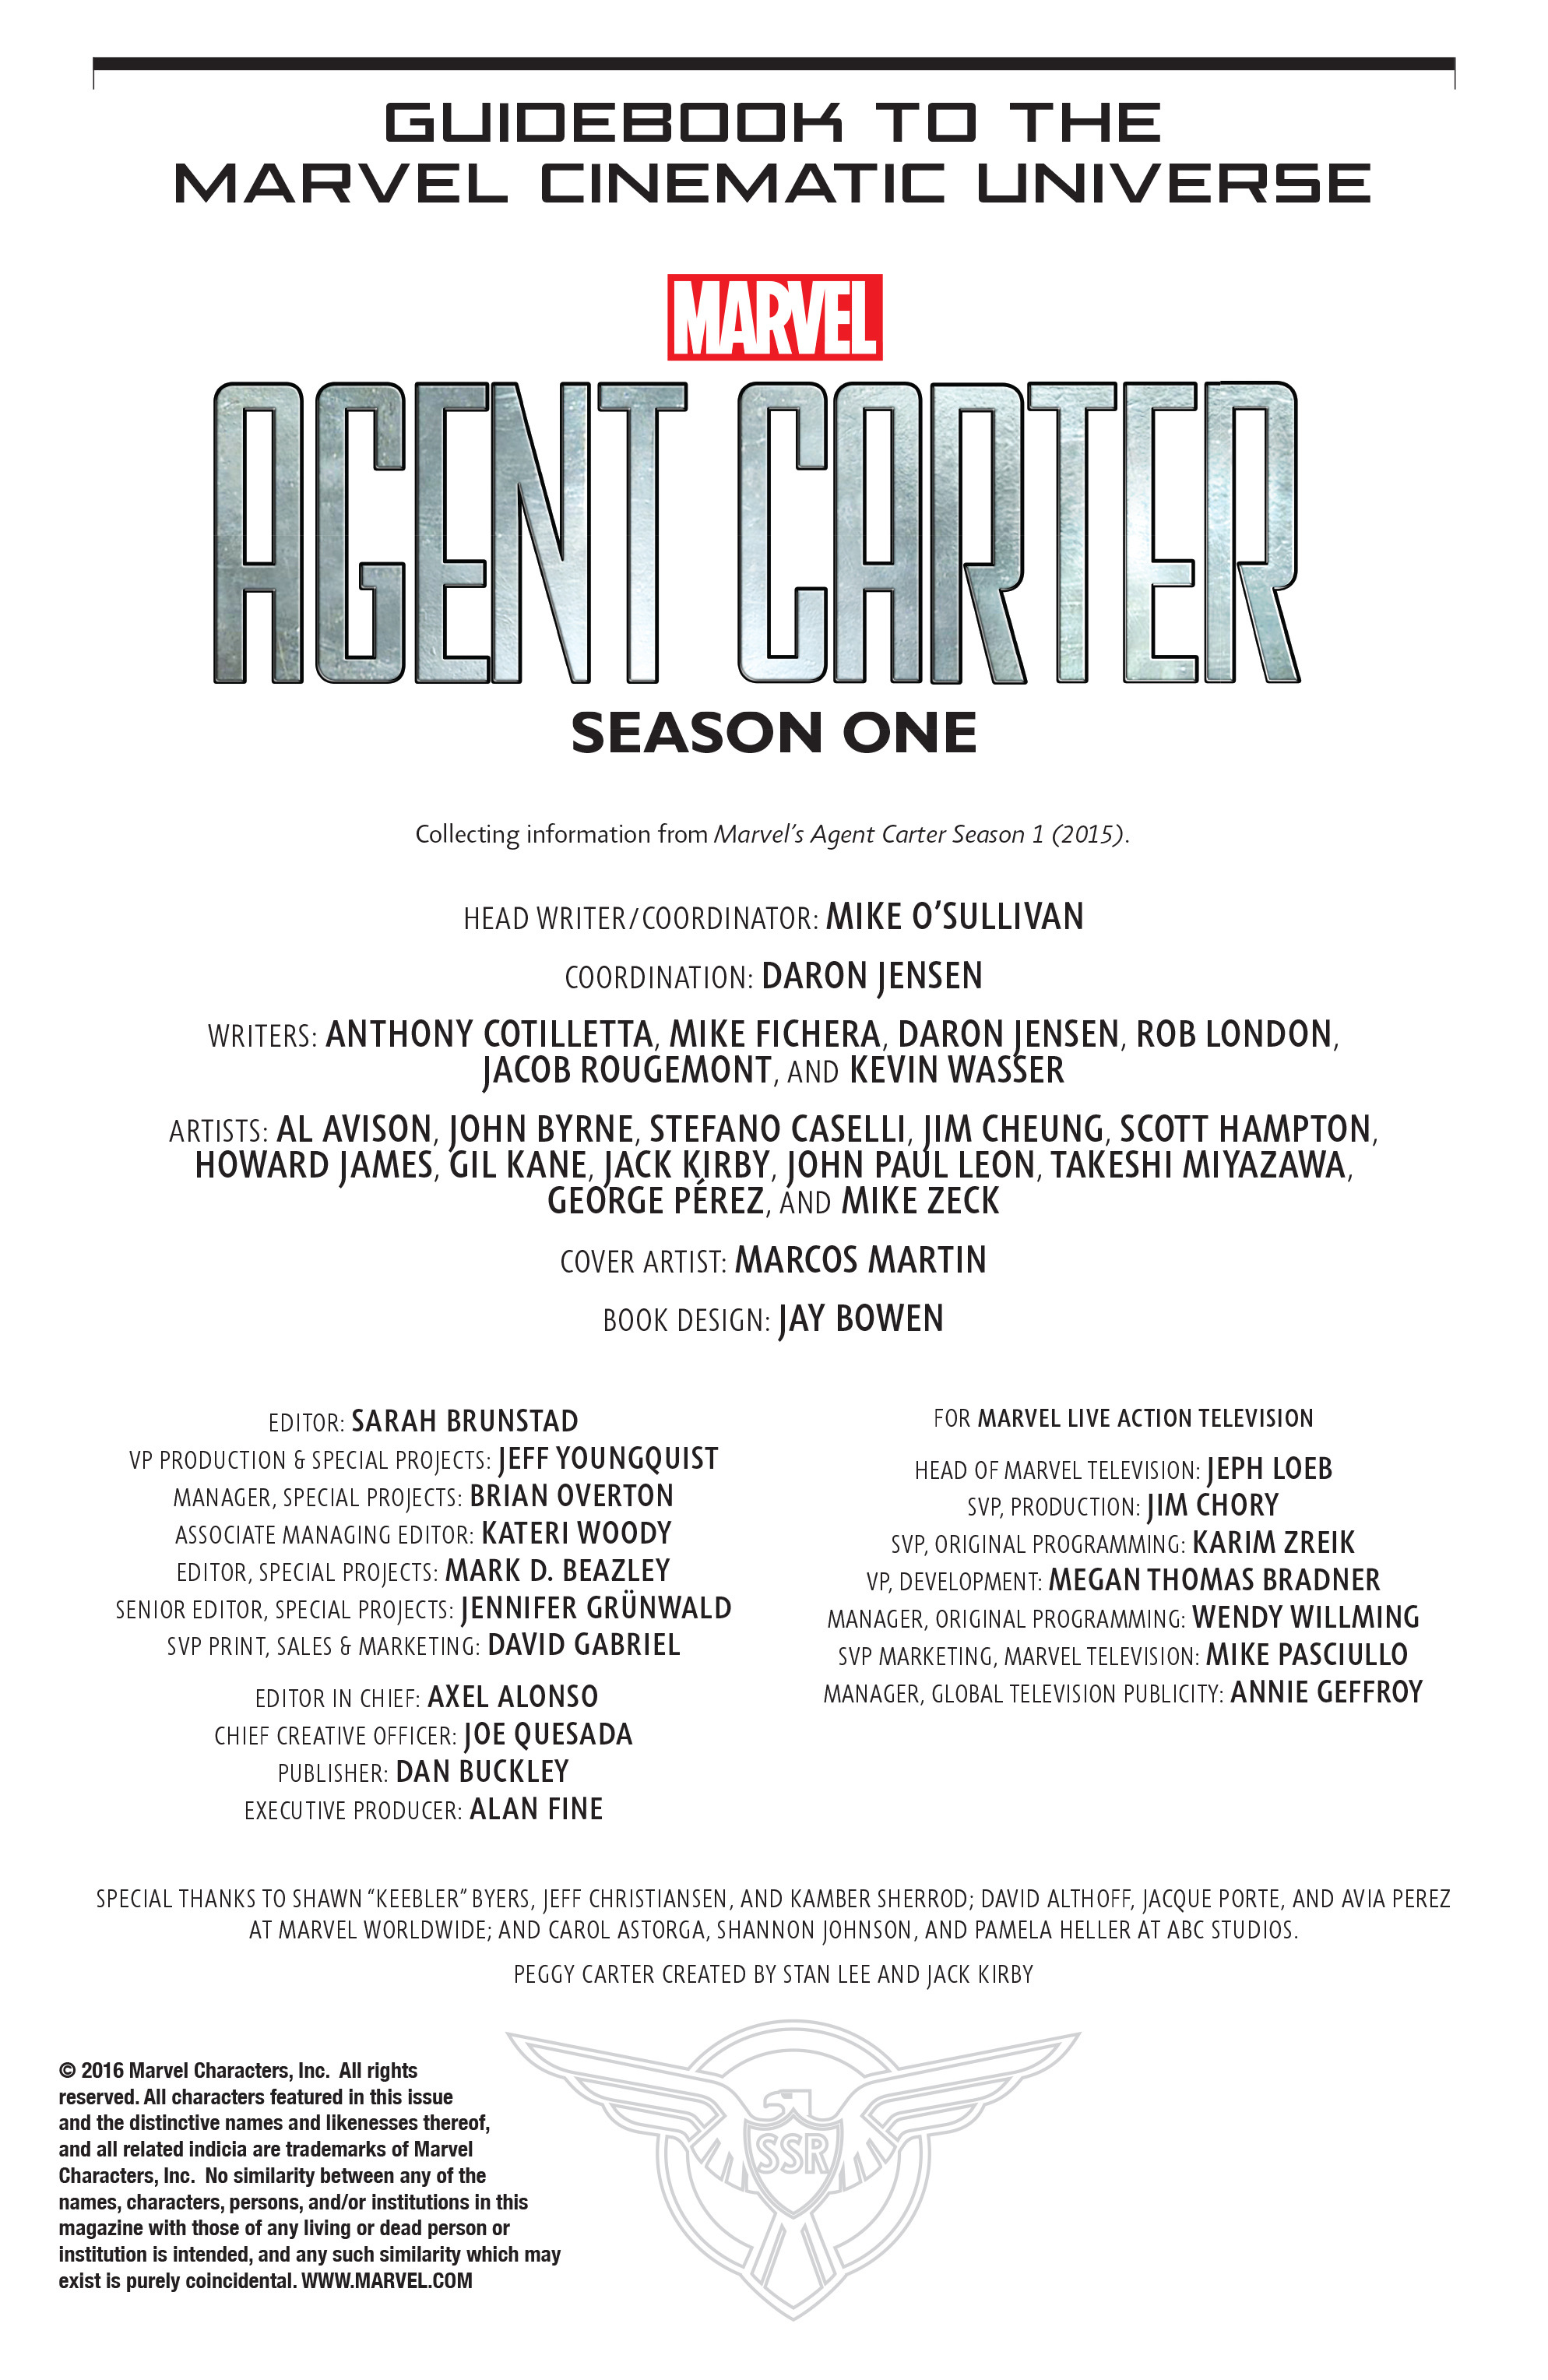 Guidebook to the Marvel Cinematic Universe - Marvels Agent Carter Season One Full Page 2